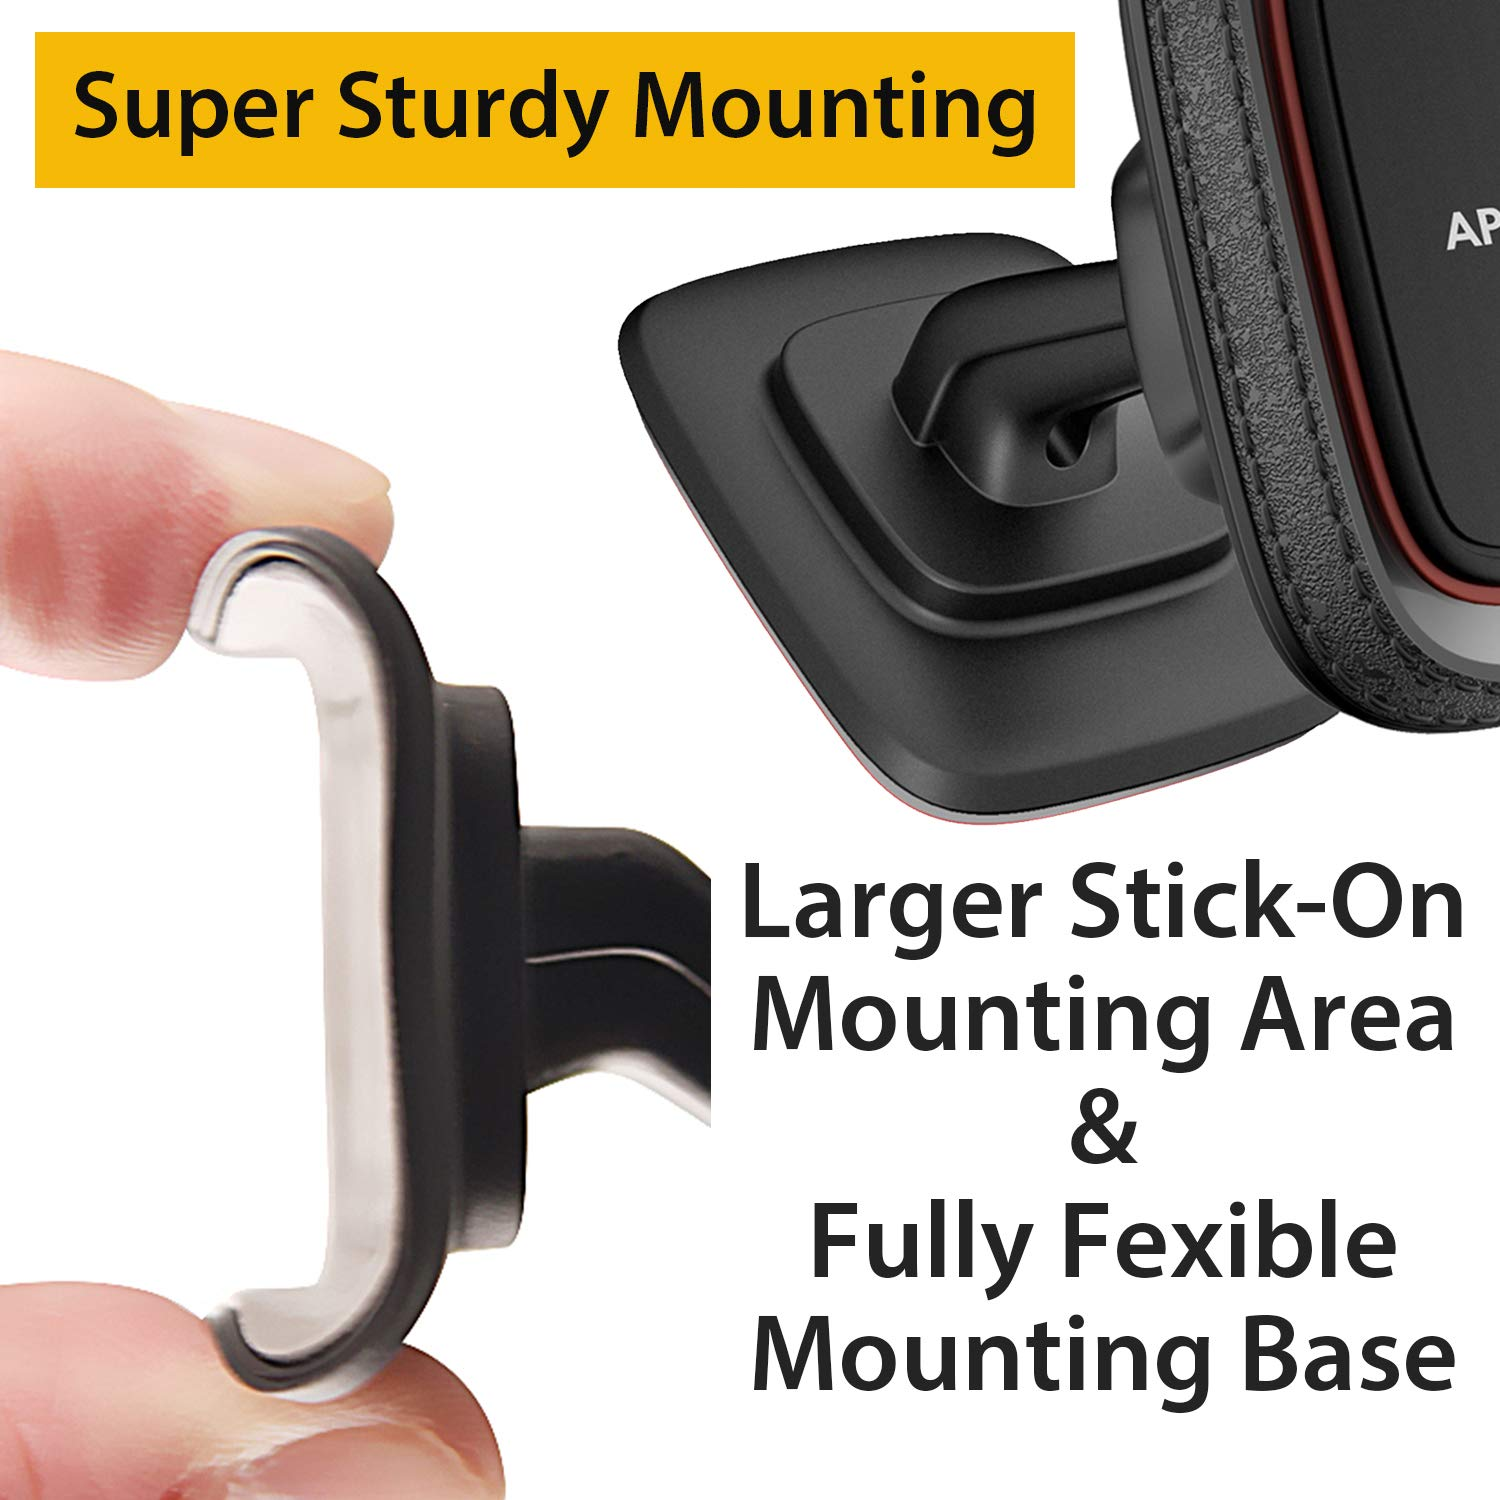 Magnetic Phone Car Mount New Generation APPS2Car Universal Magnetic Cell Phone Holder for Car with 6 Strong Magnets Magnetic Car Phone Mount with Strongest VHB Adhesive Sturdy Dash Phone Mount